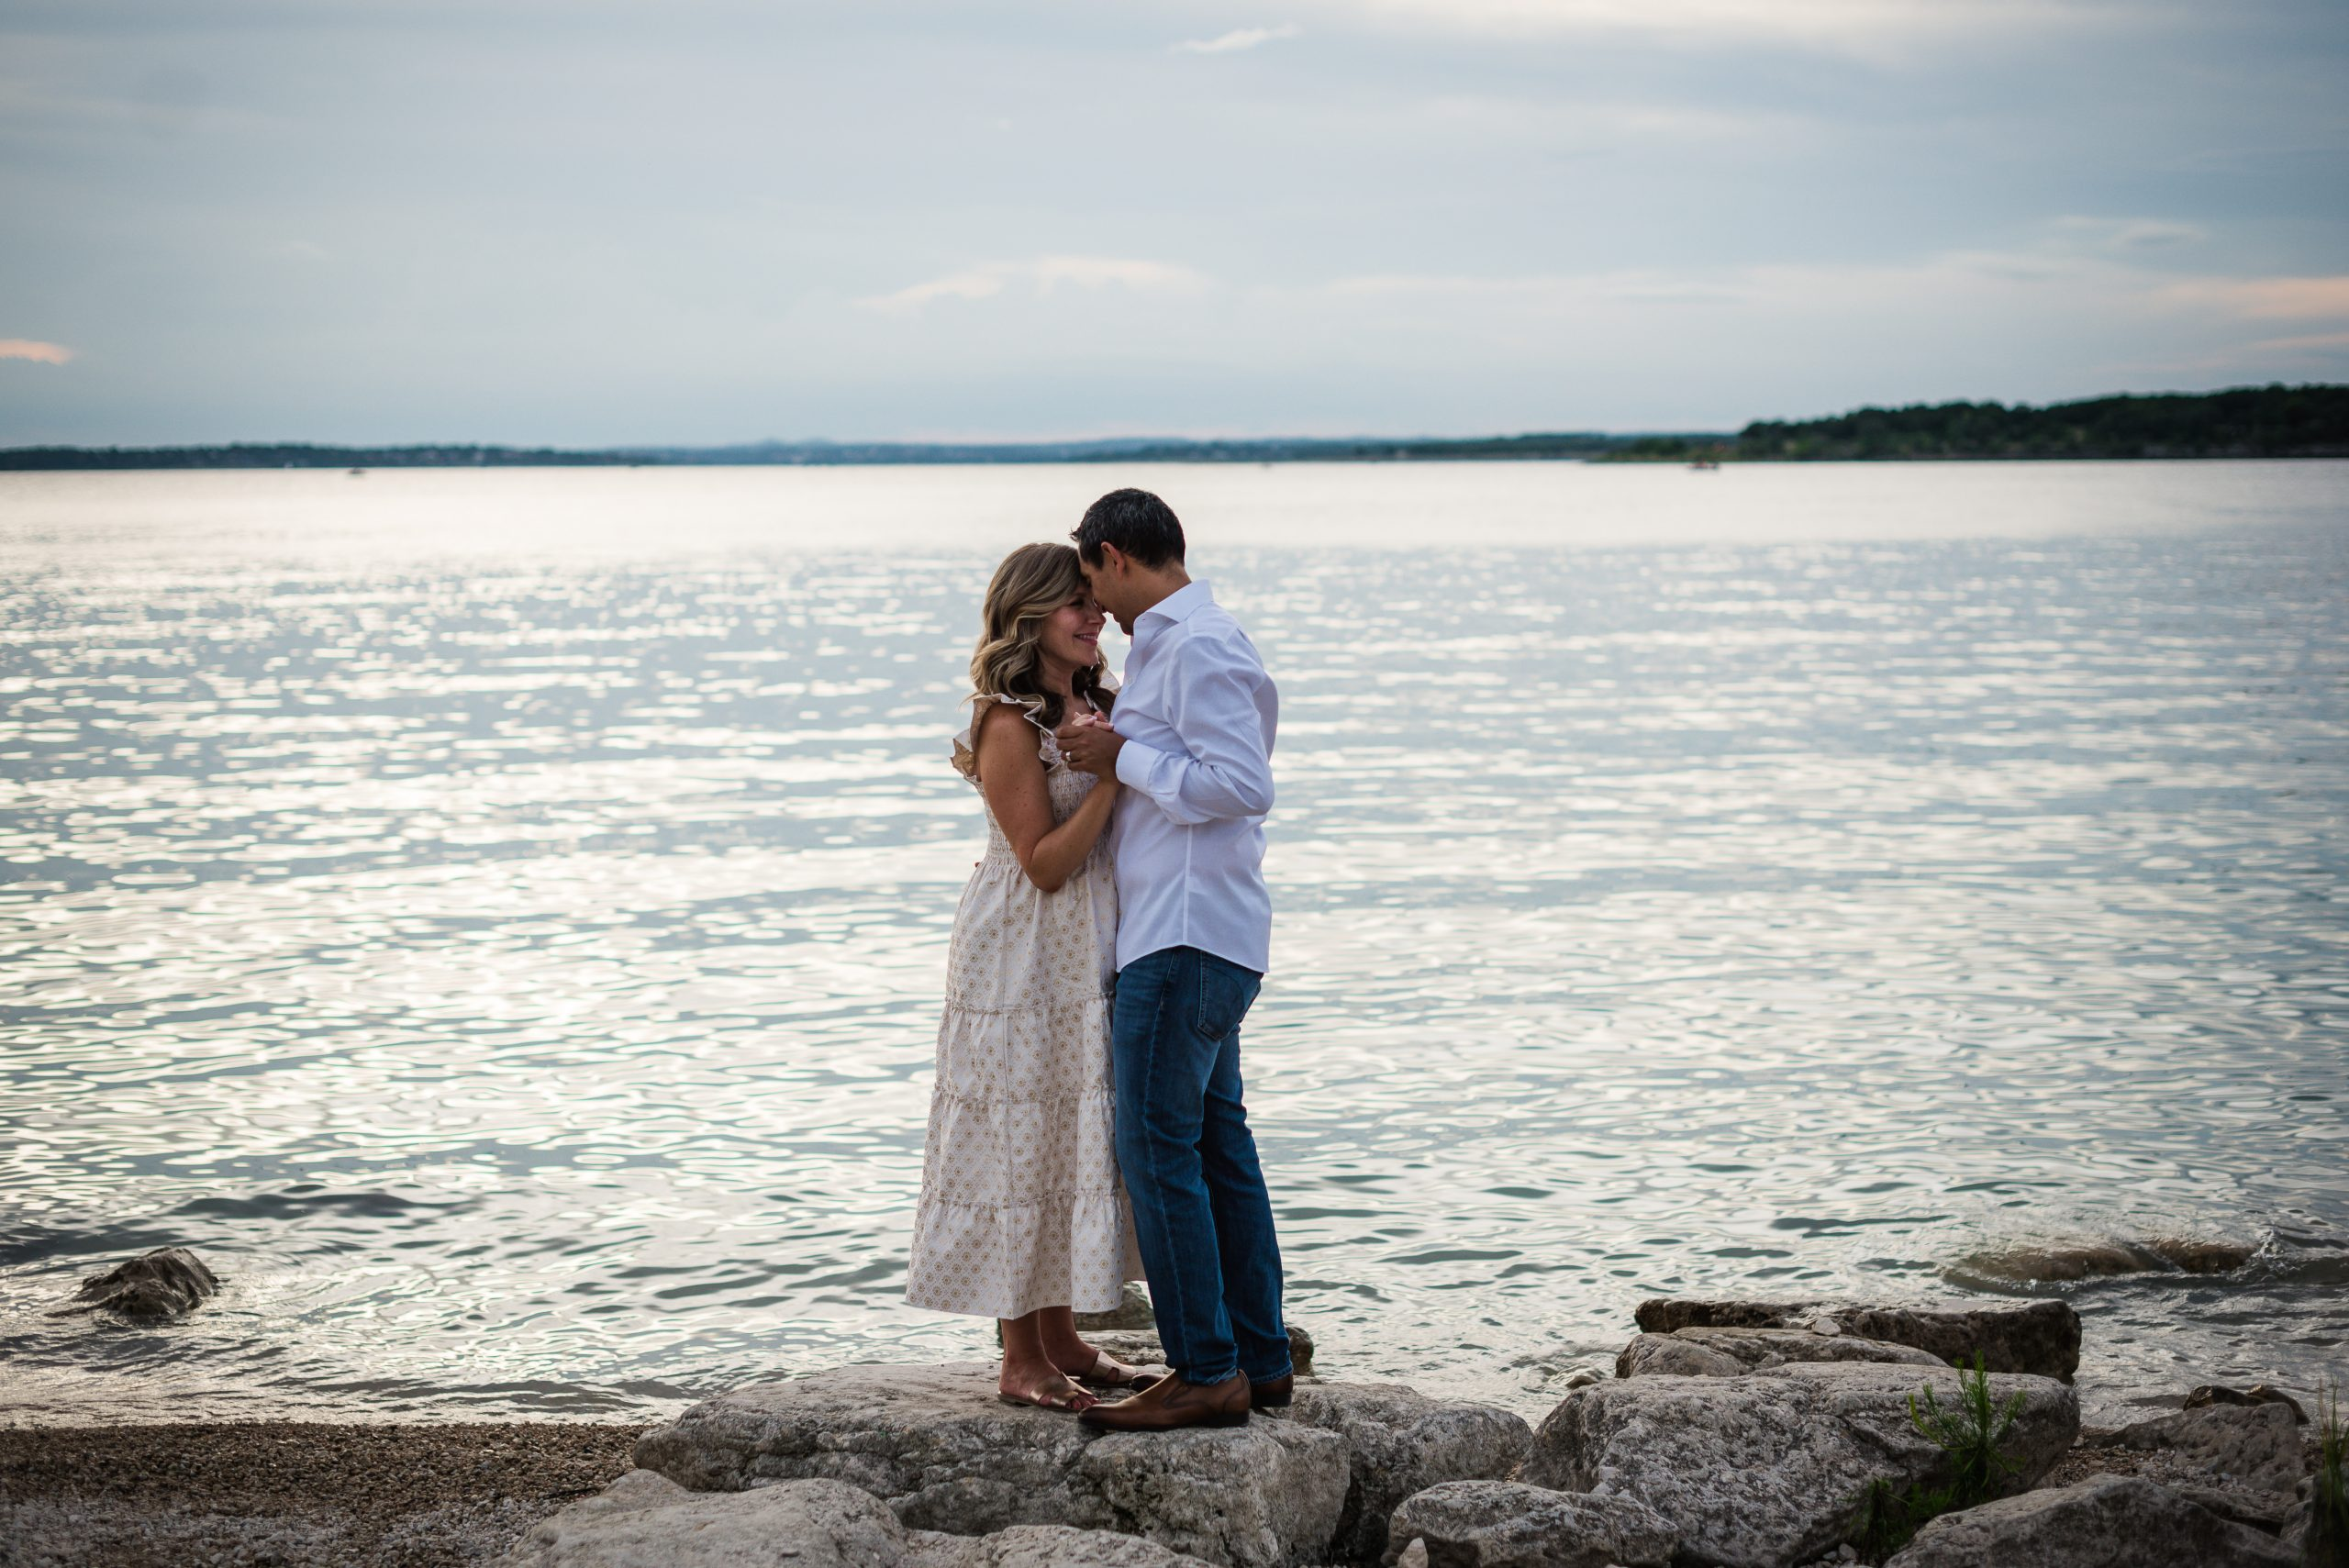 Maternity Photography Session At Canyon Lake, Texas In July Gruene Photography 28